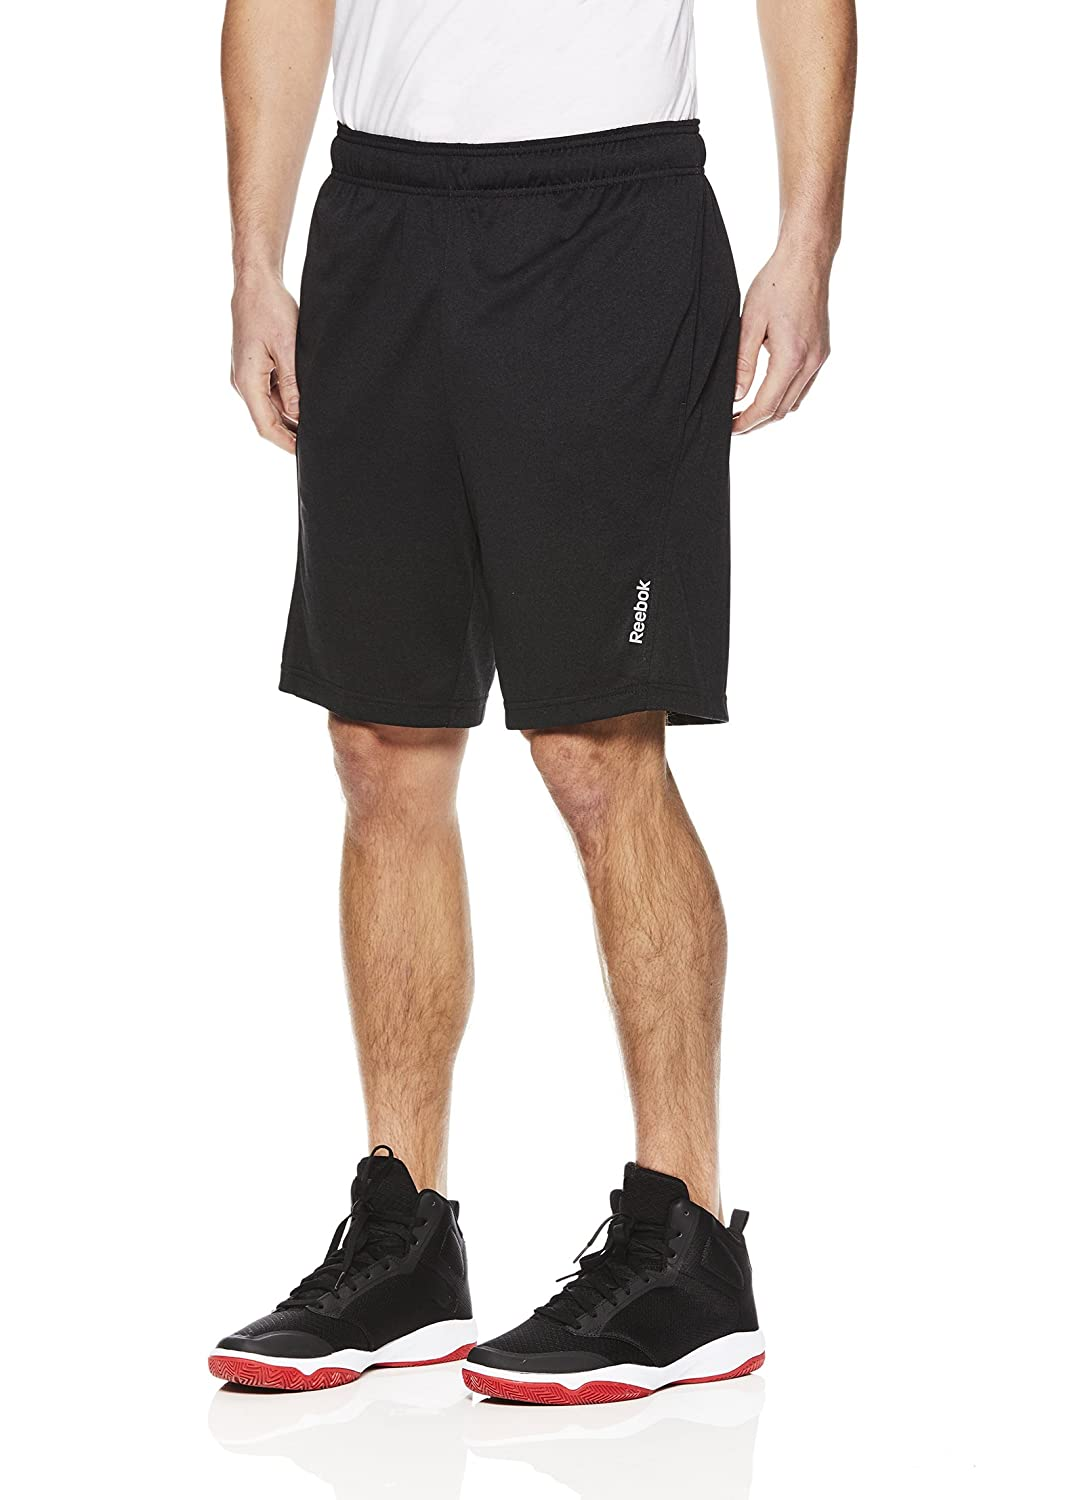 Reebok SHORTS メンズ B0763Z44LL M|Black Shadow Fireball Black Shadow Fireball M